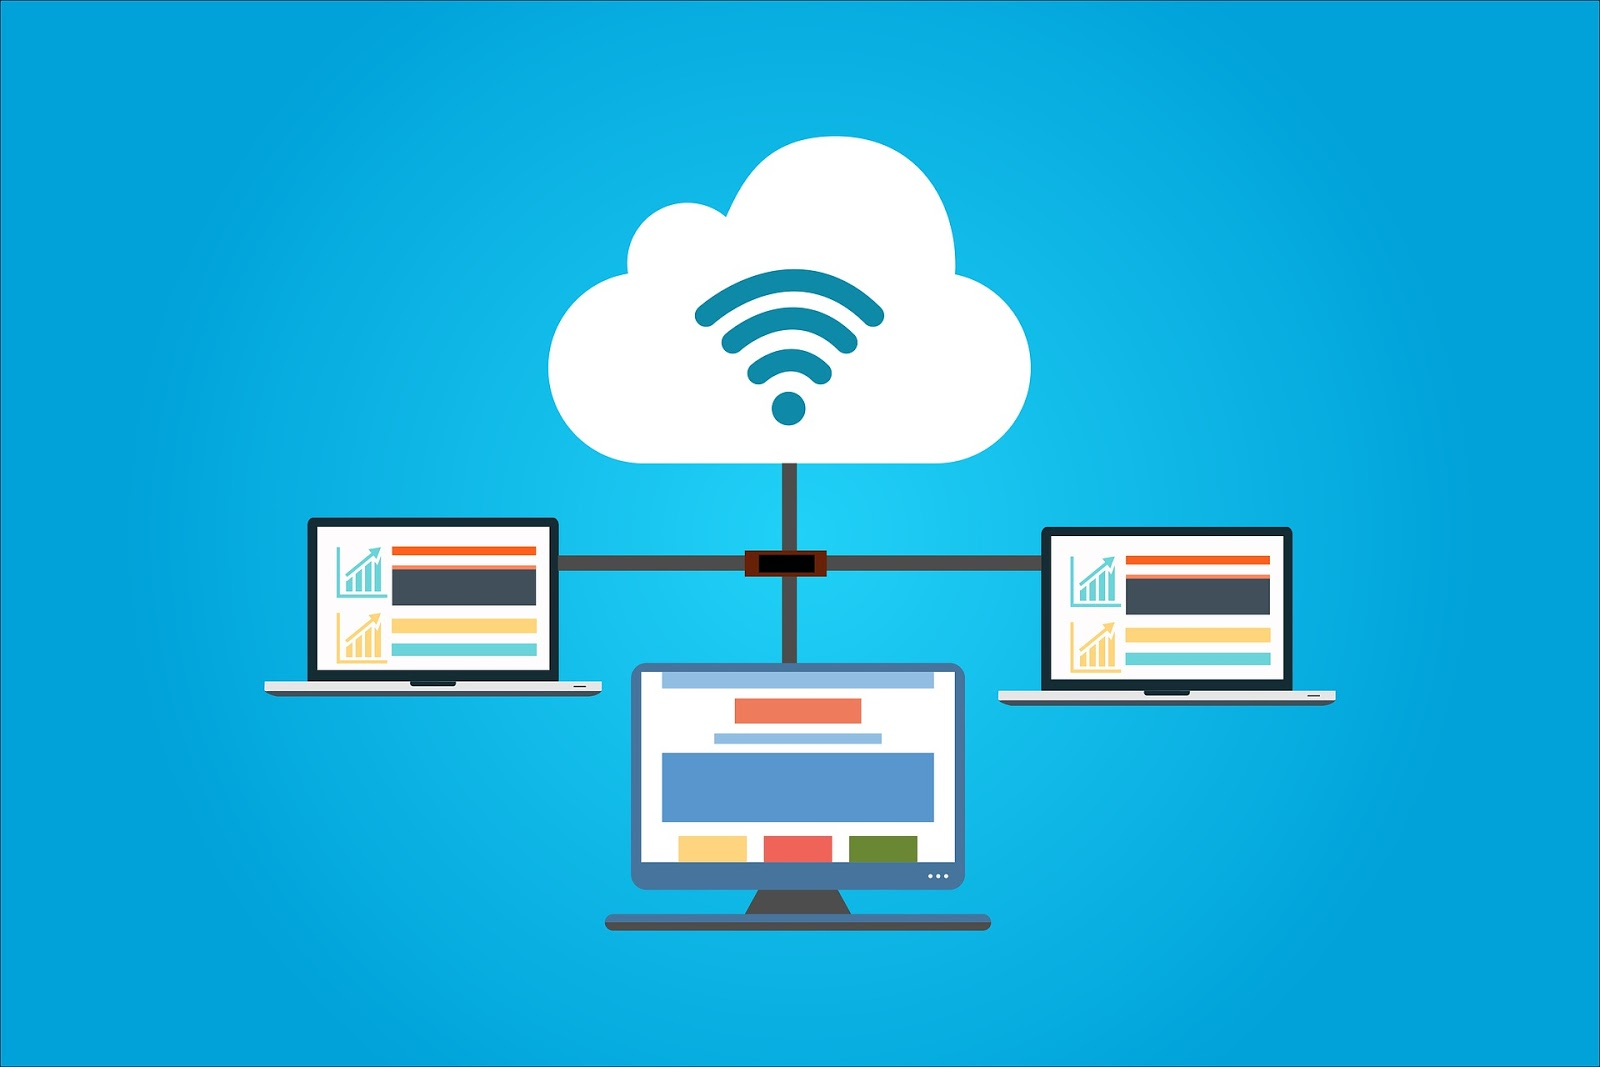 Infographic of cloud storage and 3 laptops connected to each other